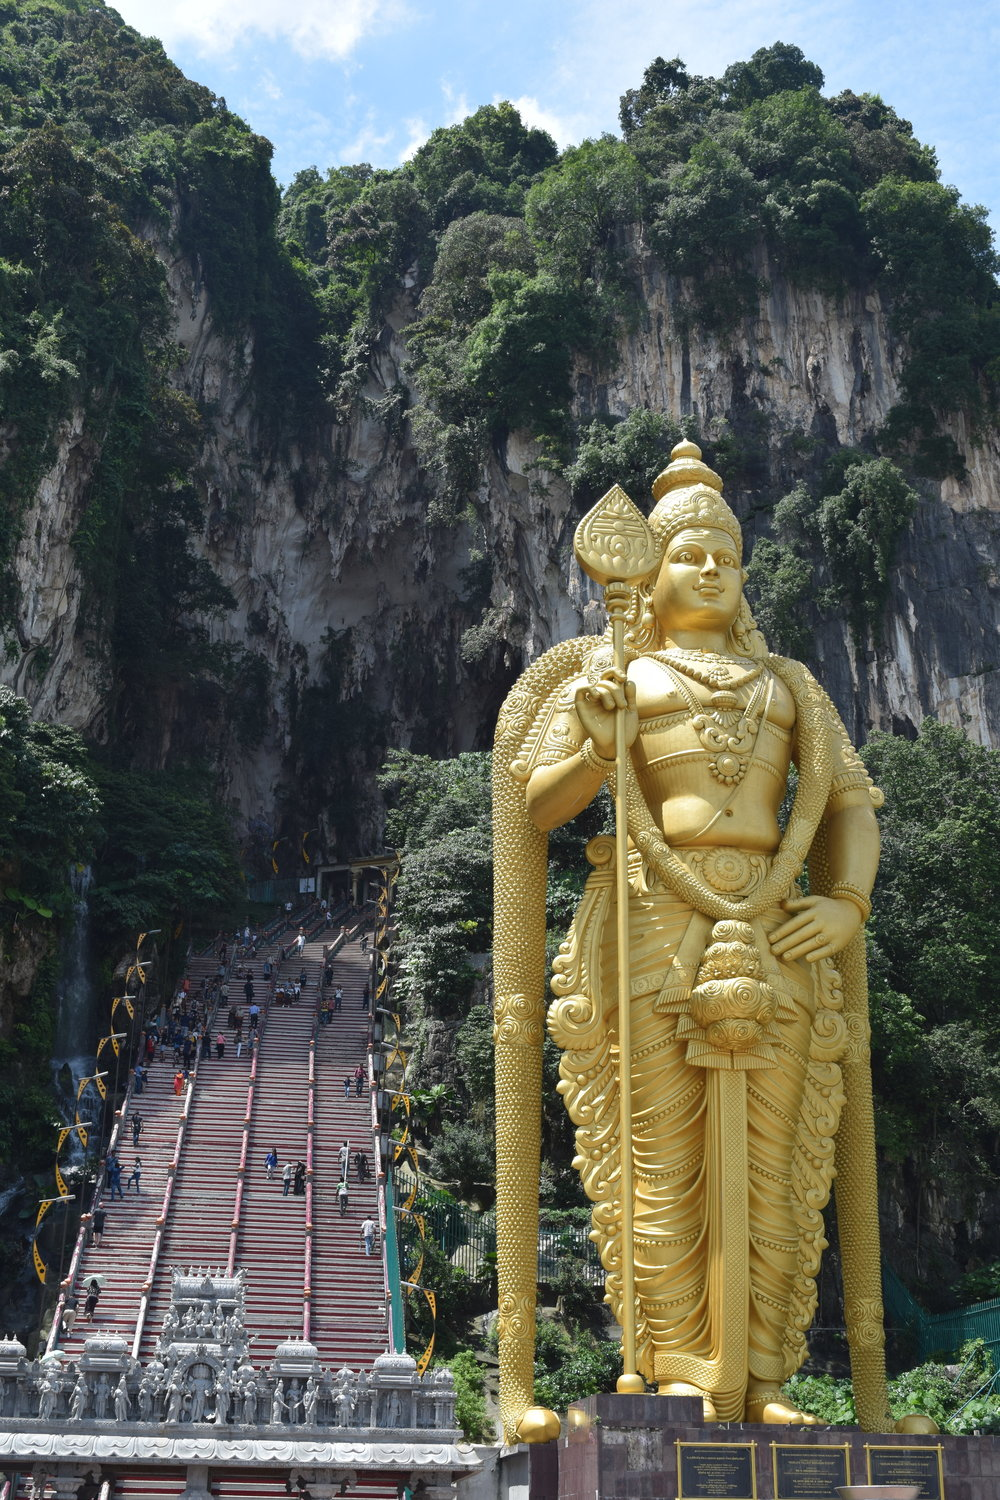 Entrance to the Batu Caves